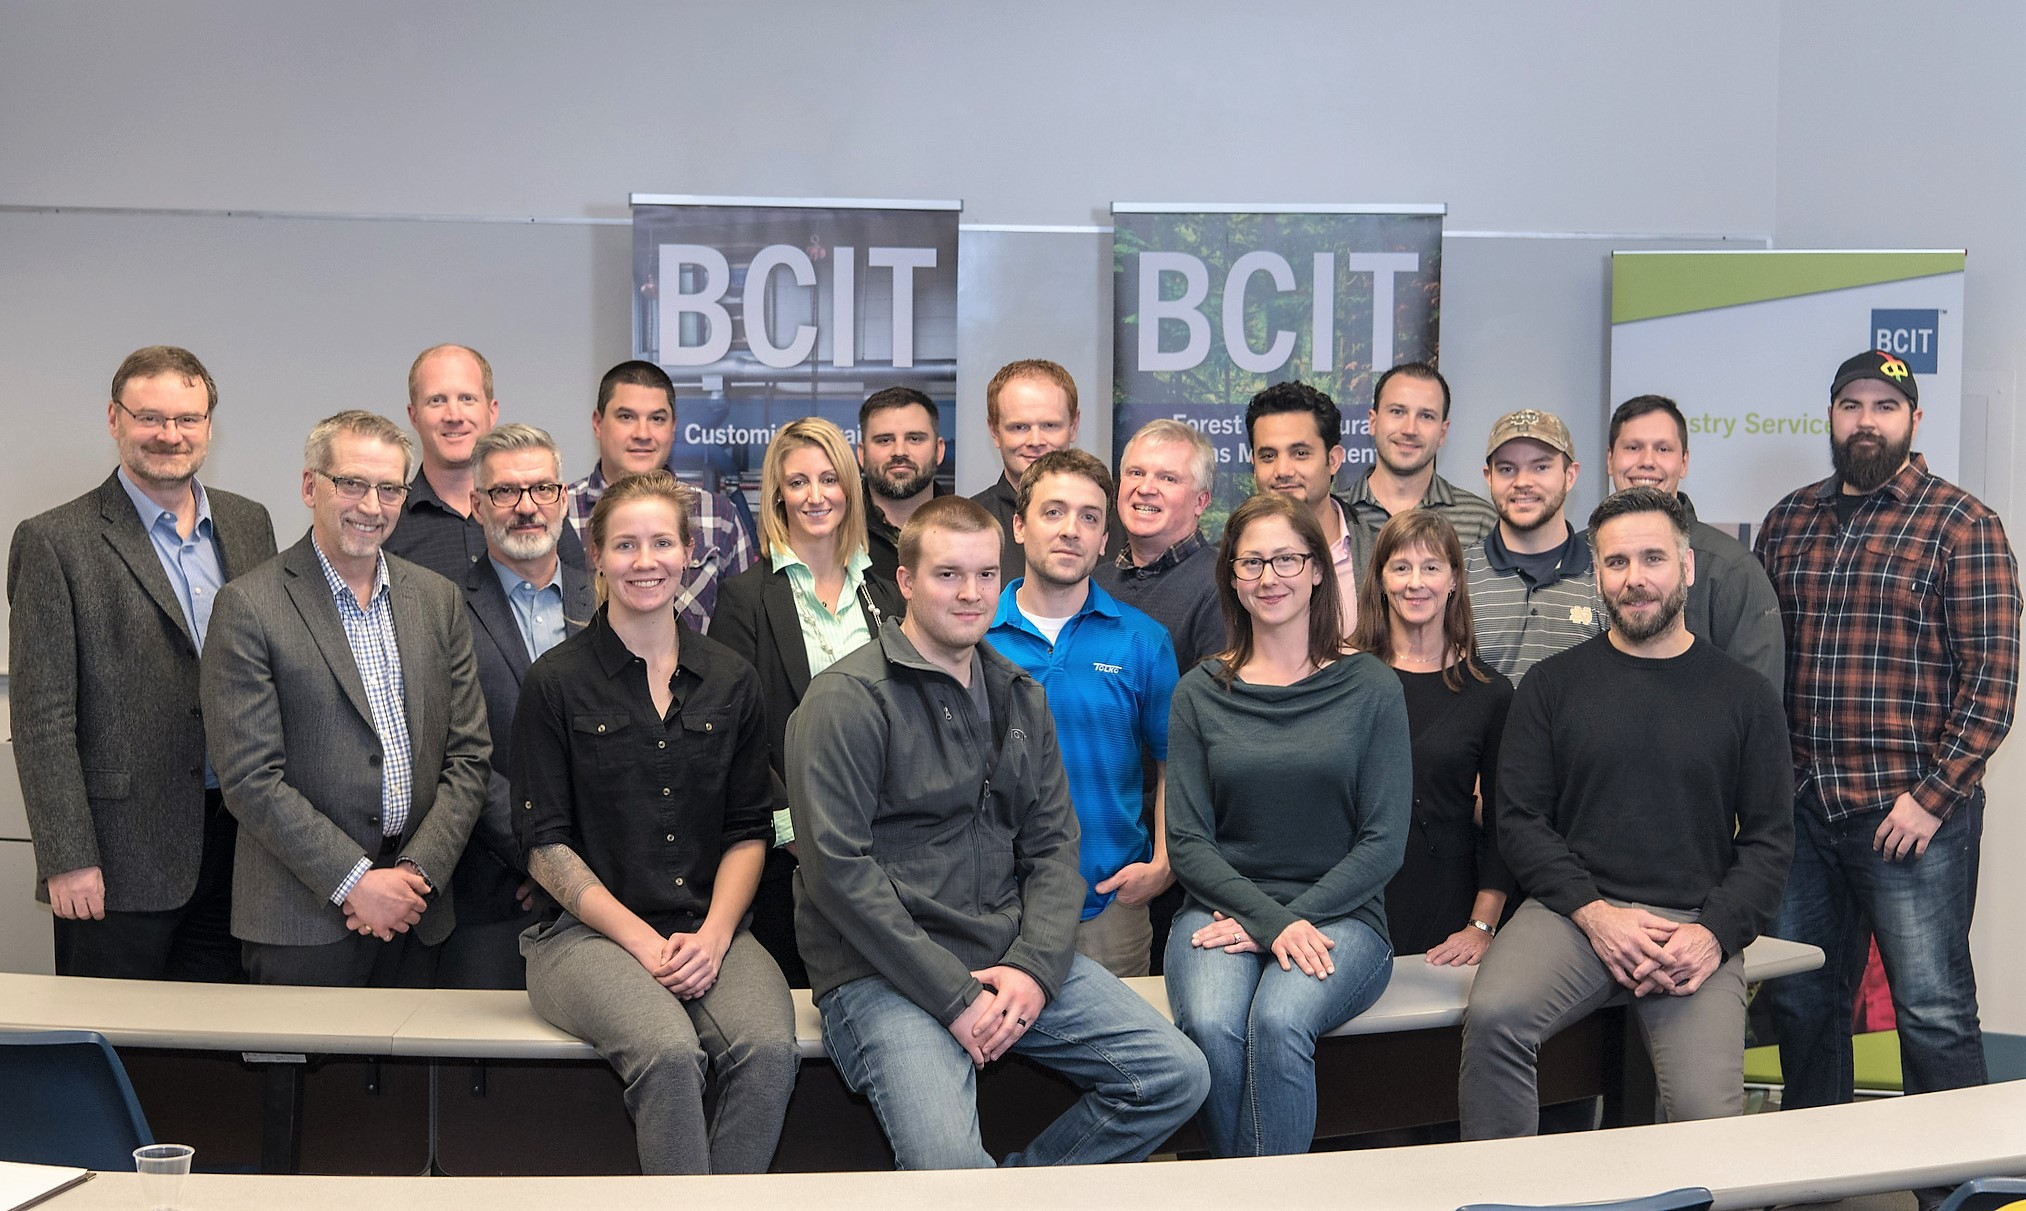 BCIT Industrial Wood Processing